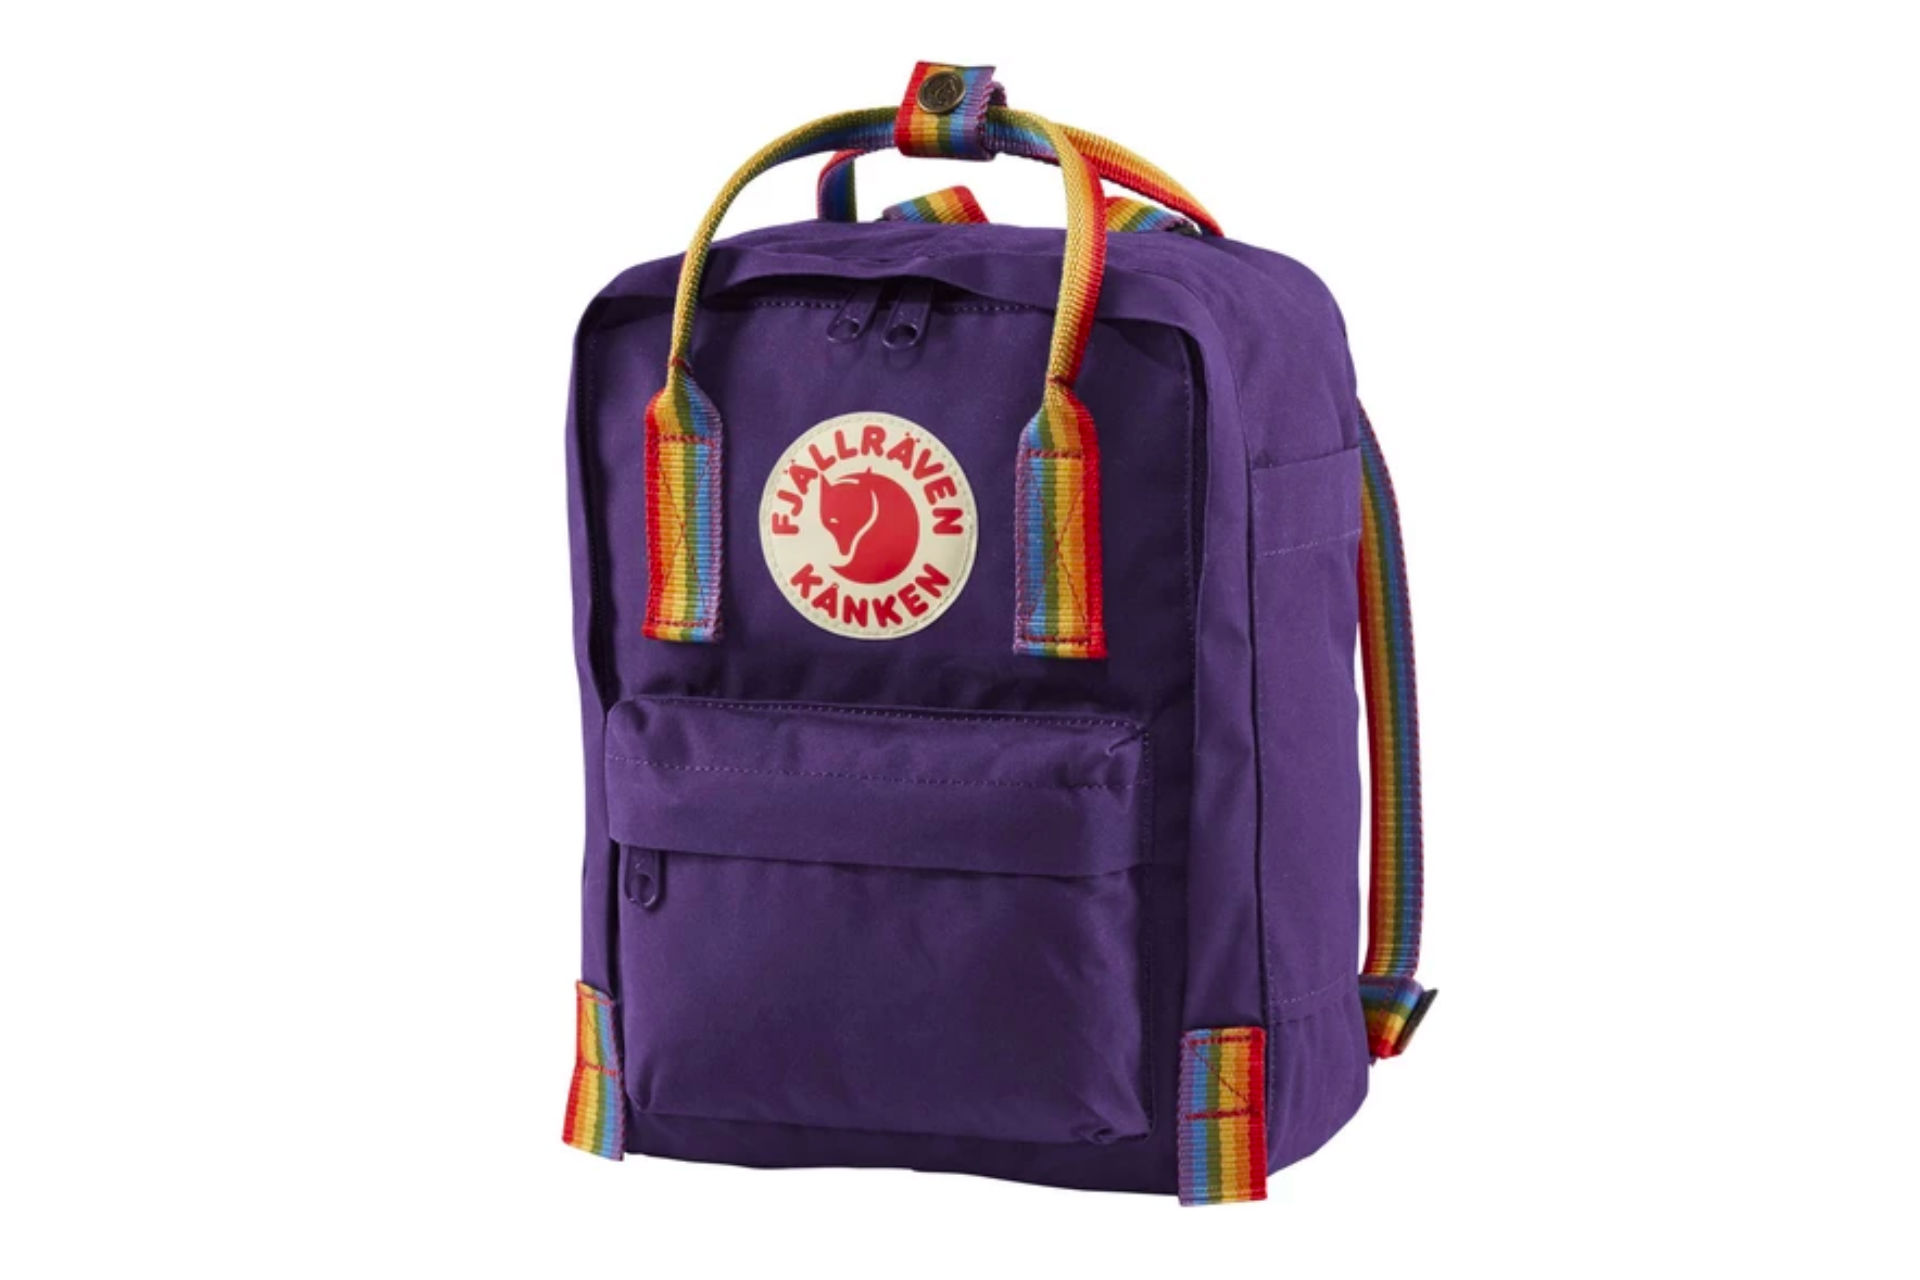 purple backpack with rainbow straps